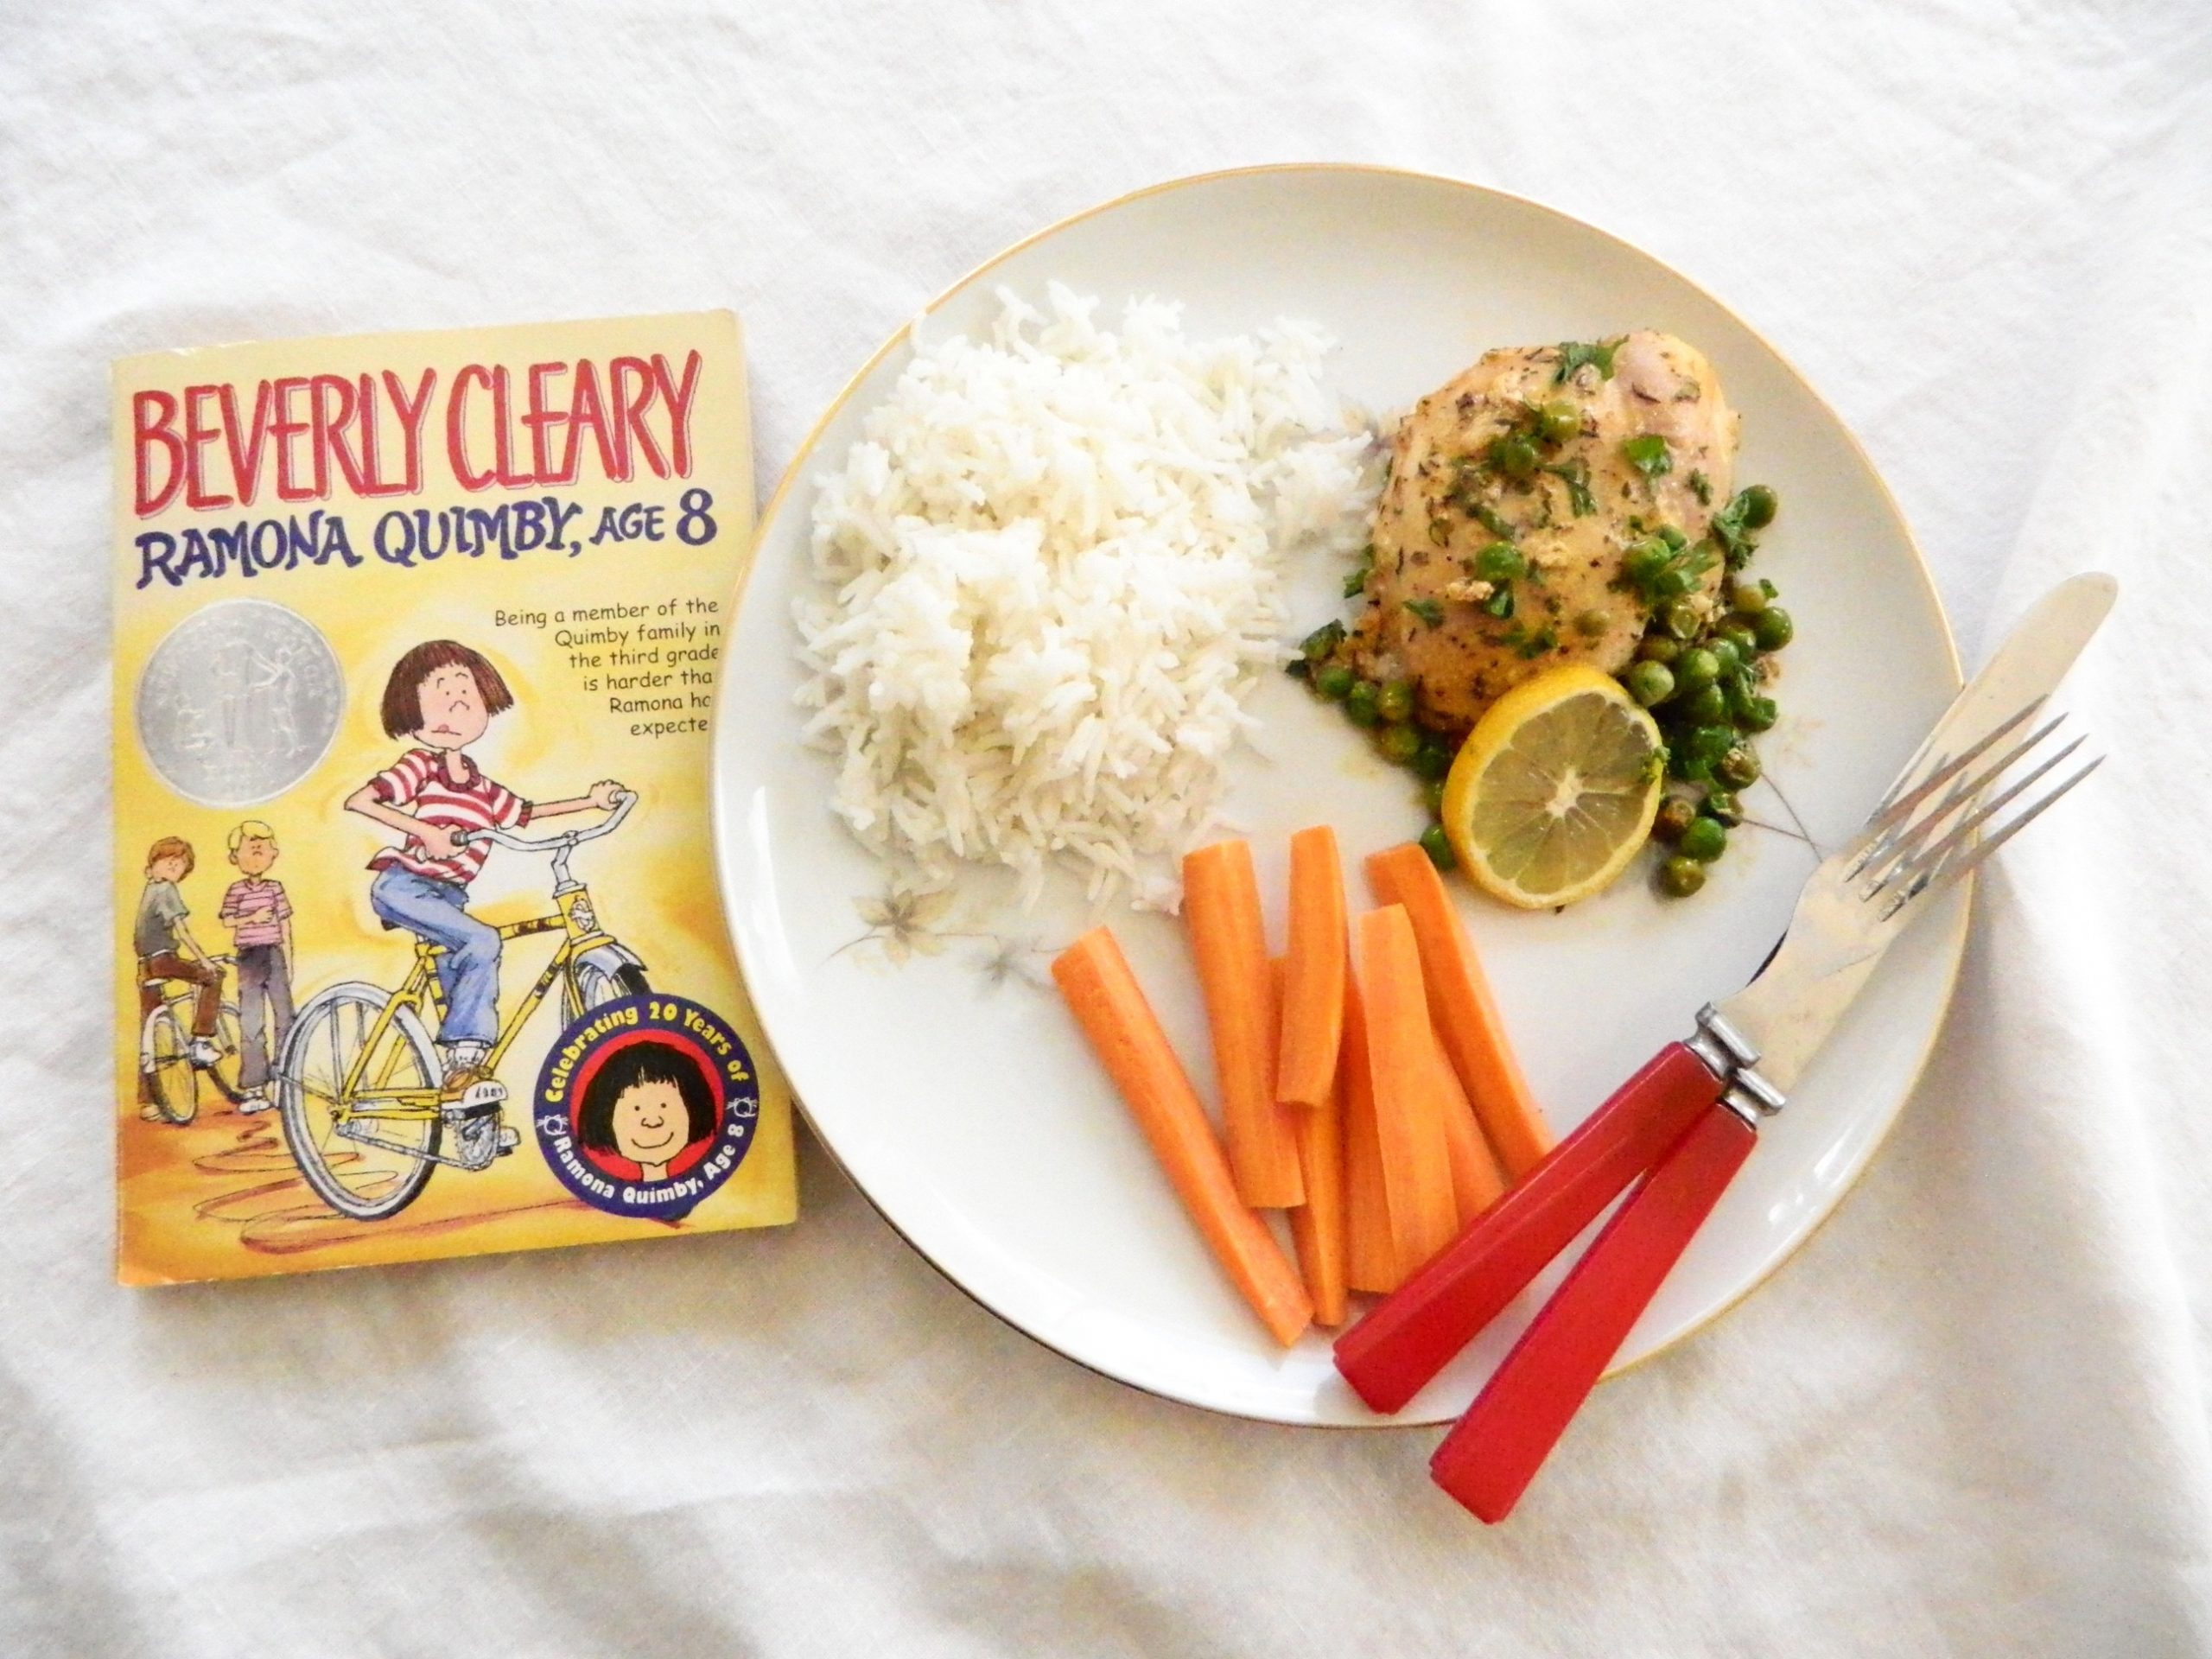 Book and Cook Club: Ramona Quimby, Age 8 - finestofsuppers.com